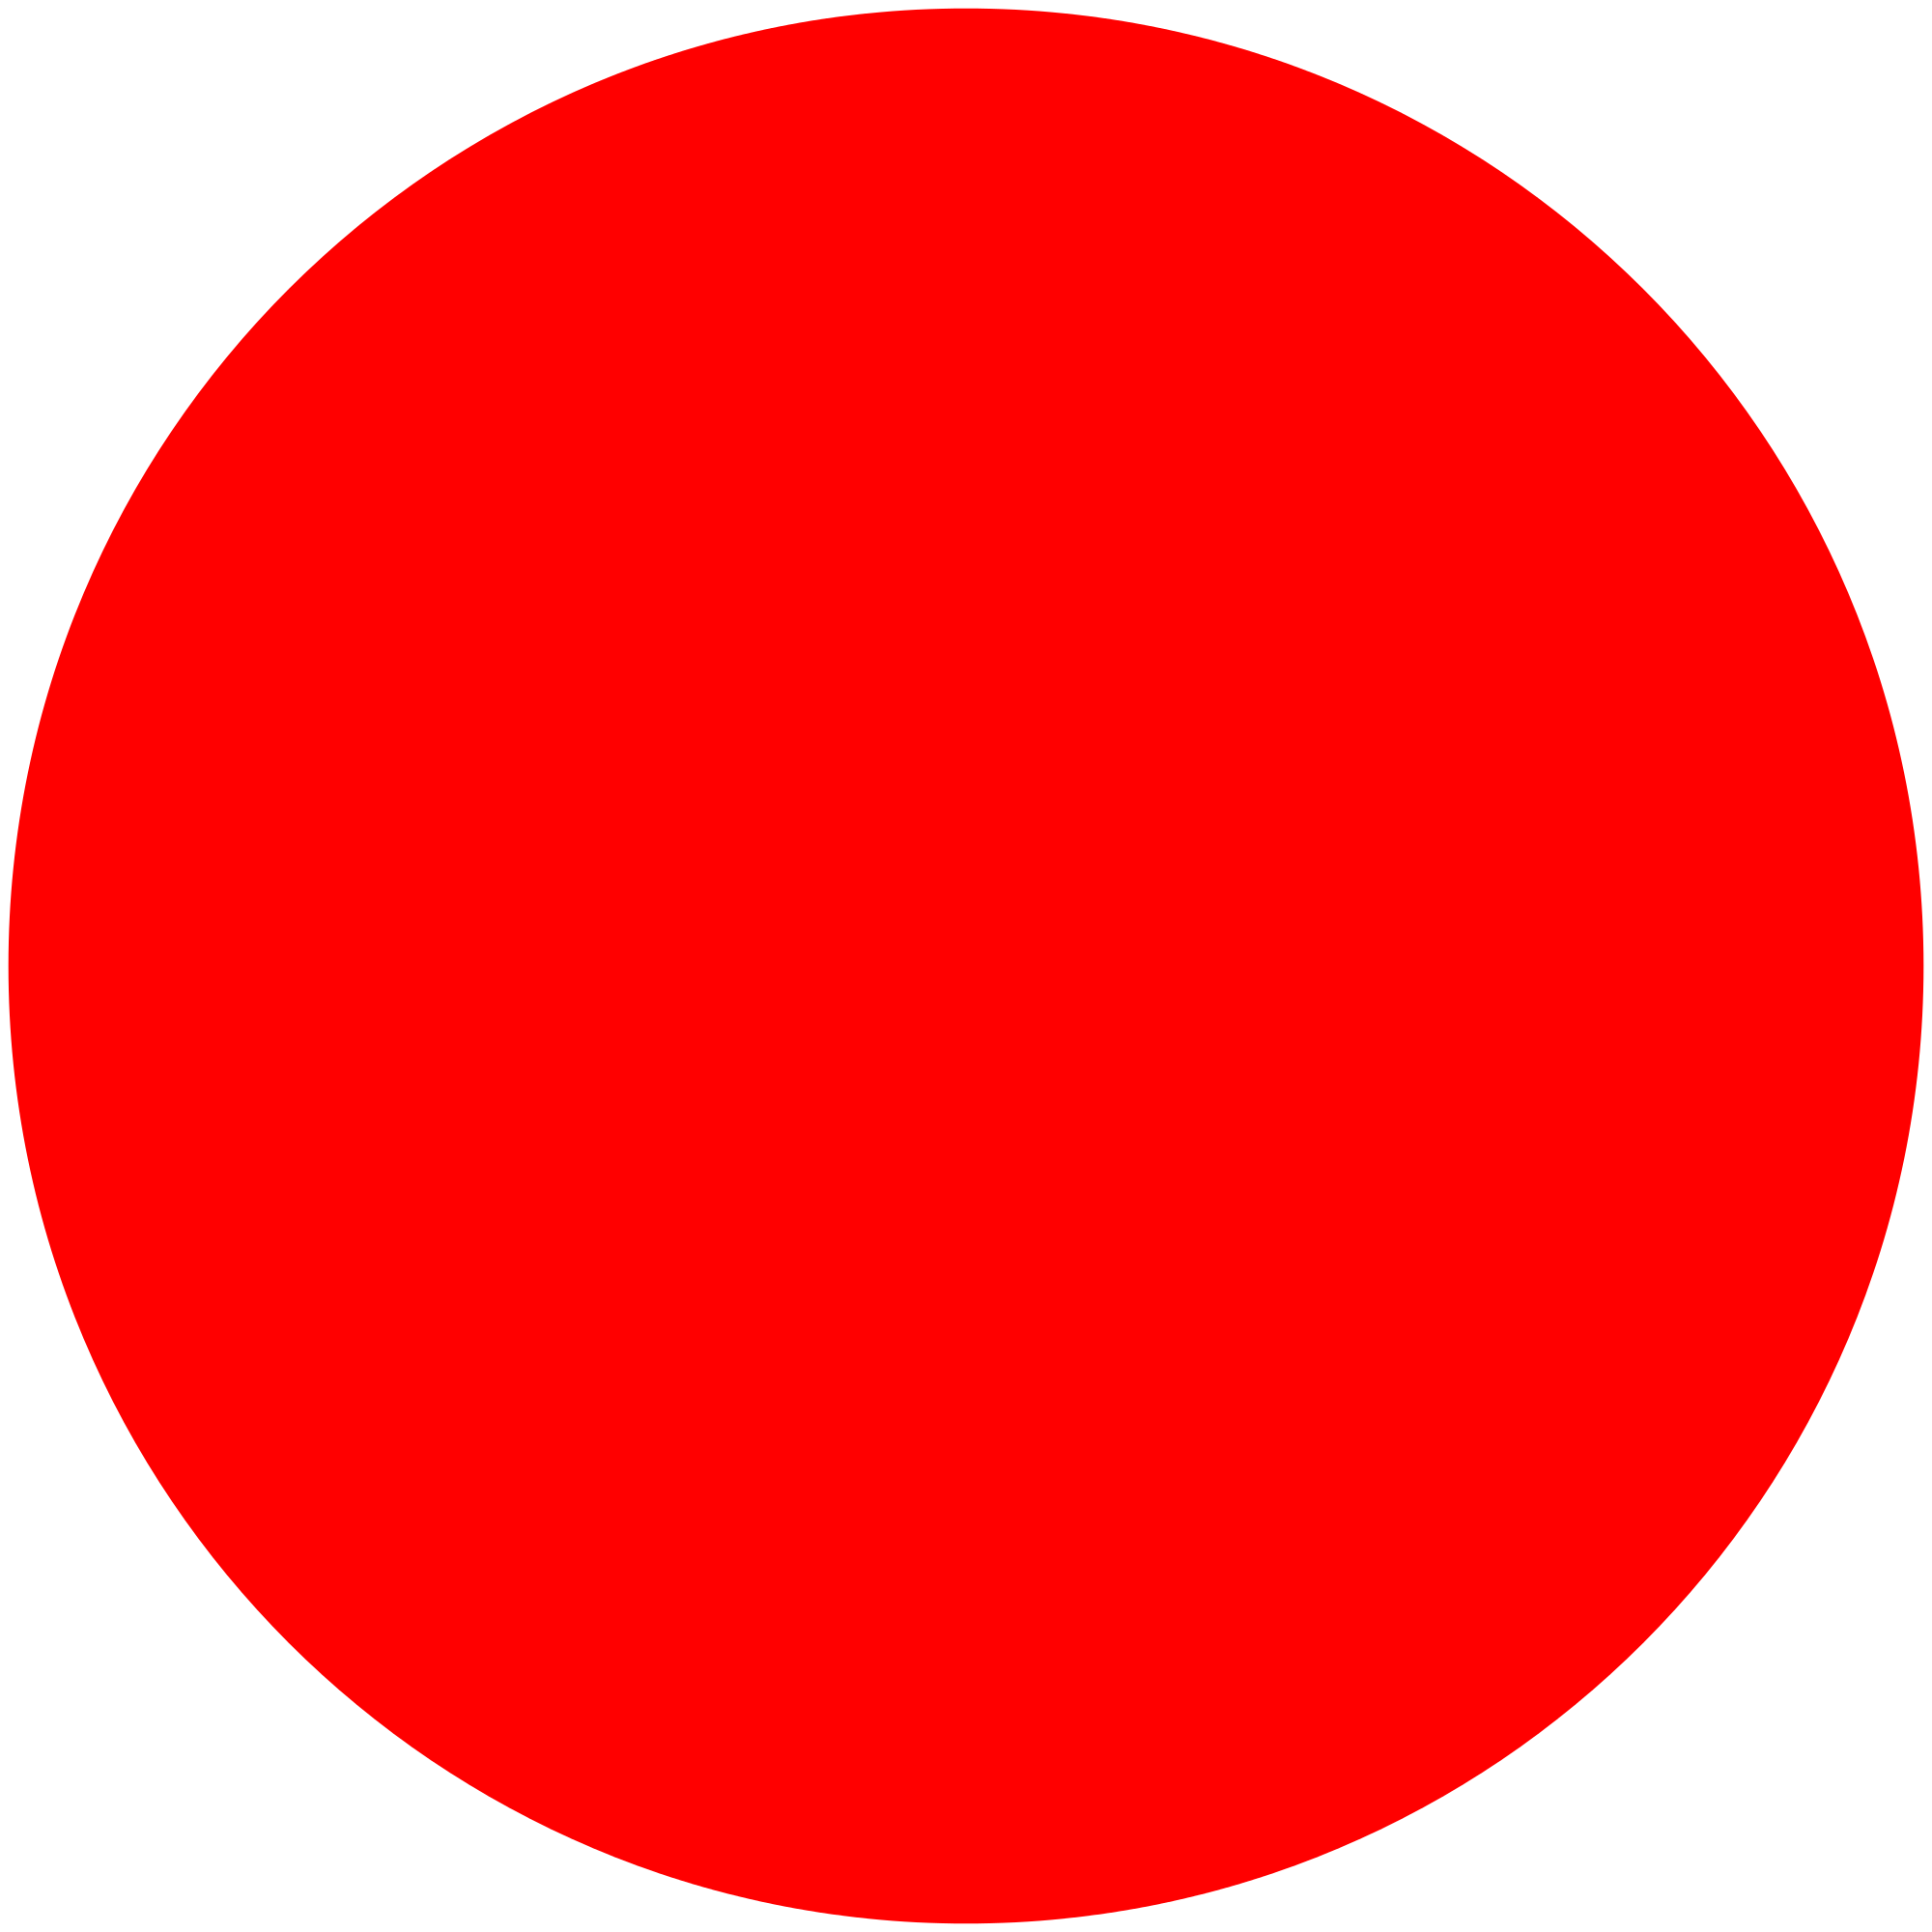 Red circle download free clipart with a transparent background.